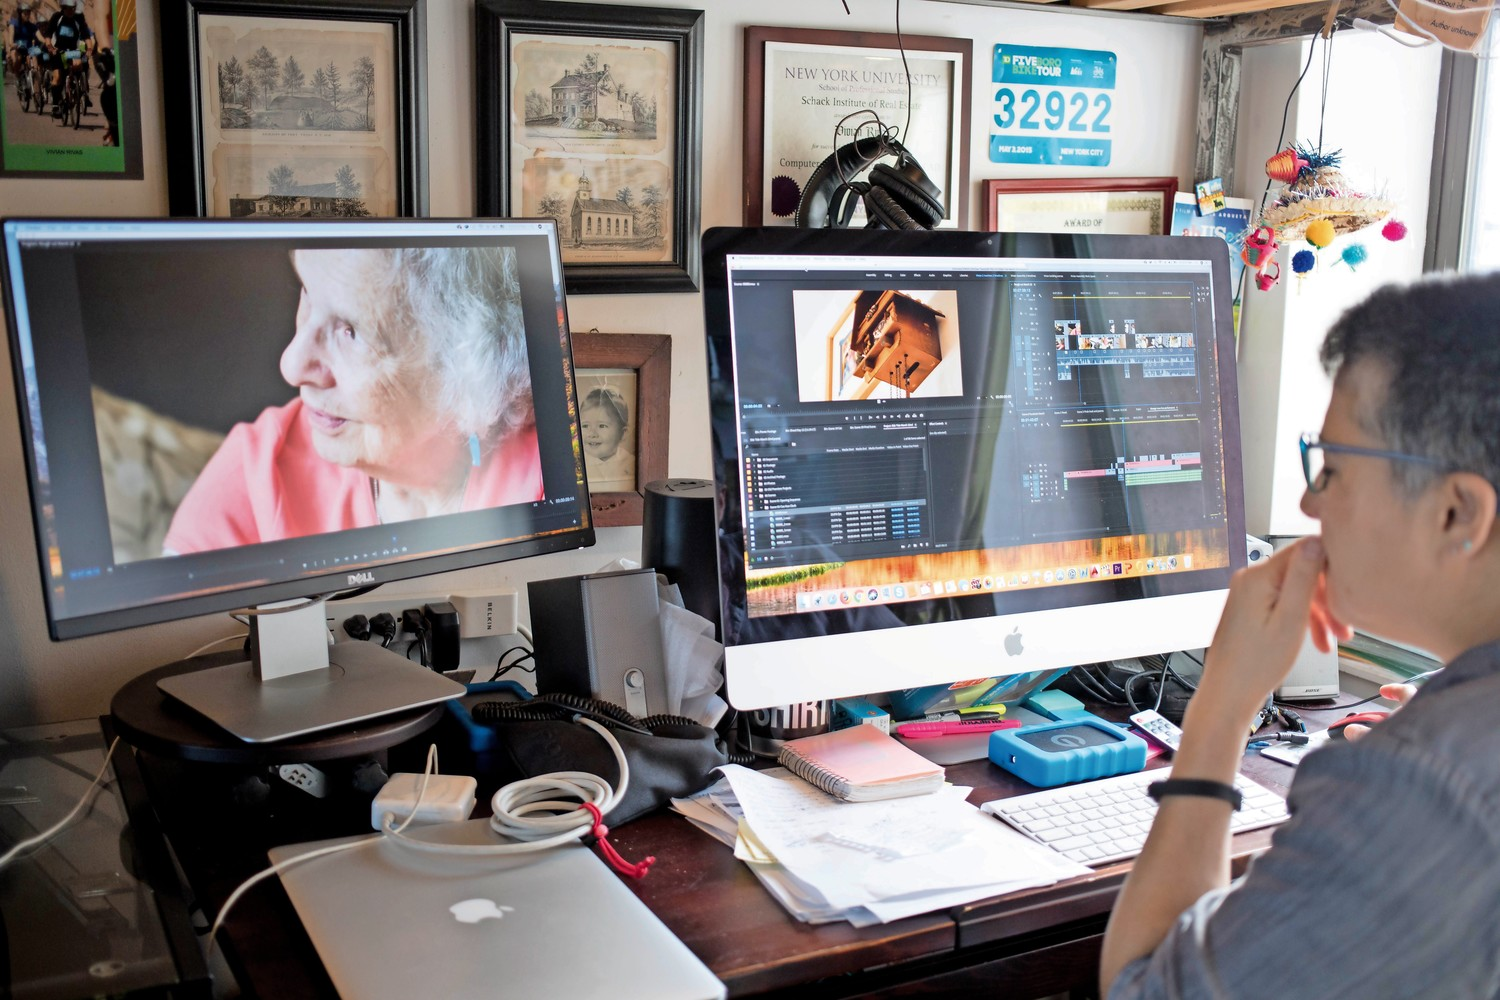 Vivian Rivas uses Adobe Premiere and two monitors for her editing workflow. Rivas is close to finishing her master's degree in film with a concentration in documentary filmmaking. Rivas is workign on a short documentary about Zee Pacifici, a retired teacher living in Riverdale.